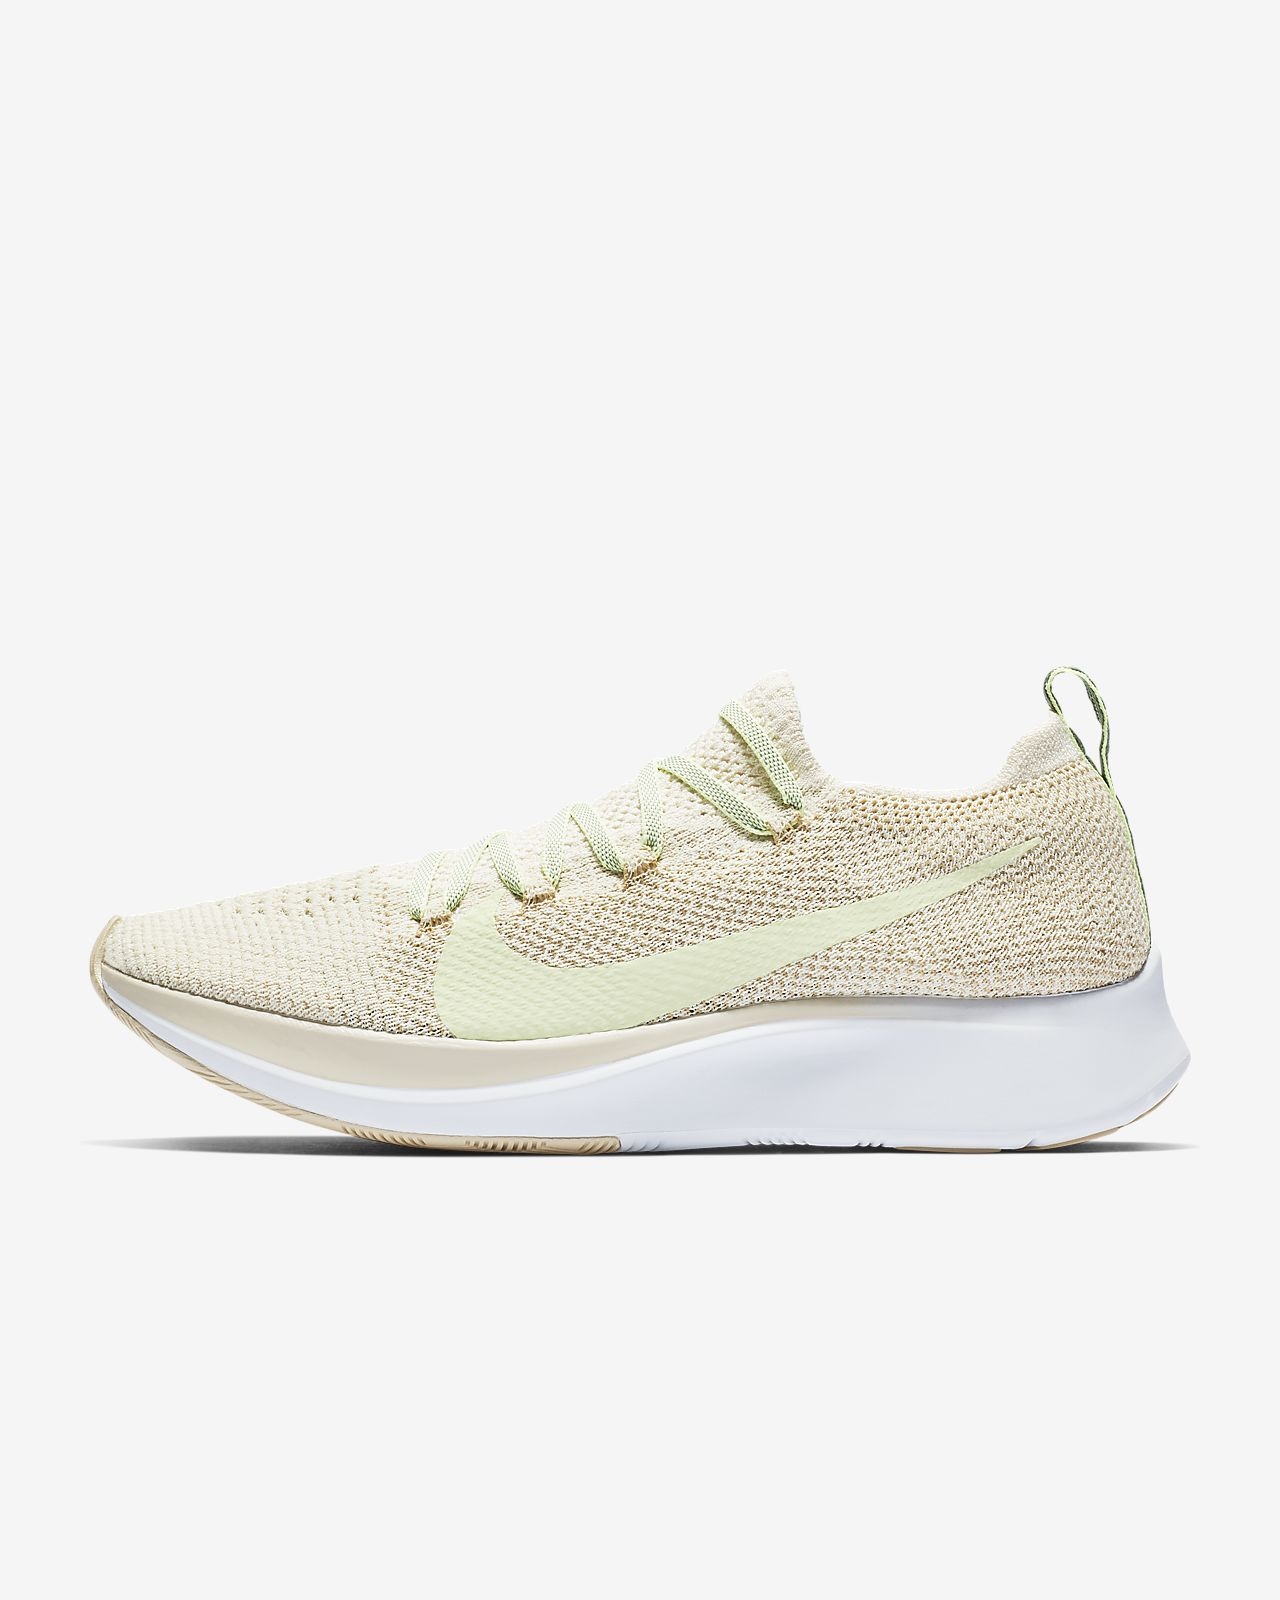 Chaussure de running Nike Zoom Fly Flyknit pour Femme